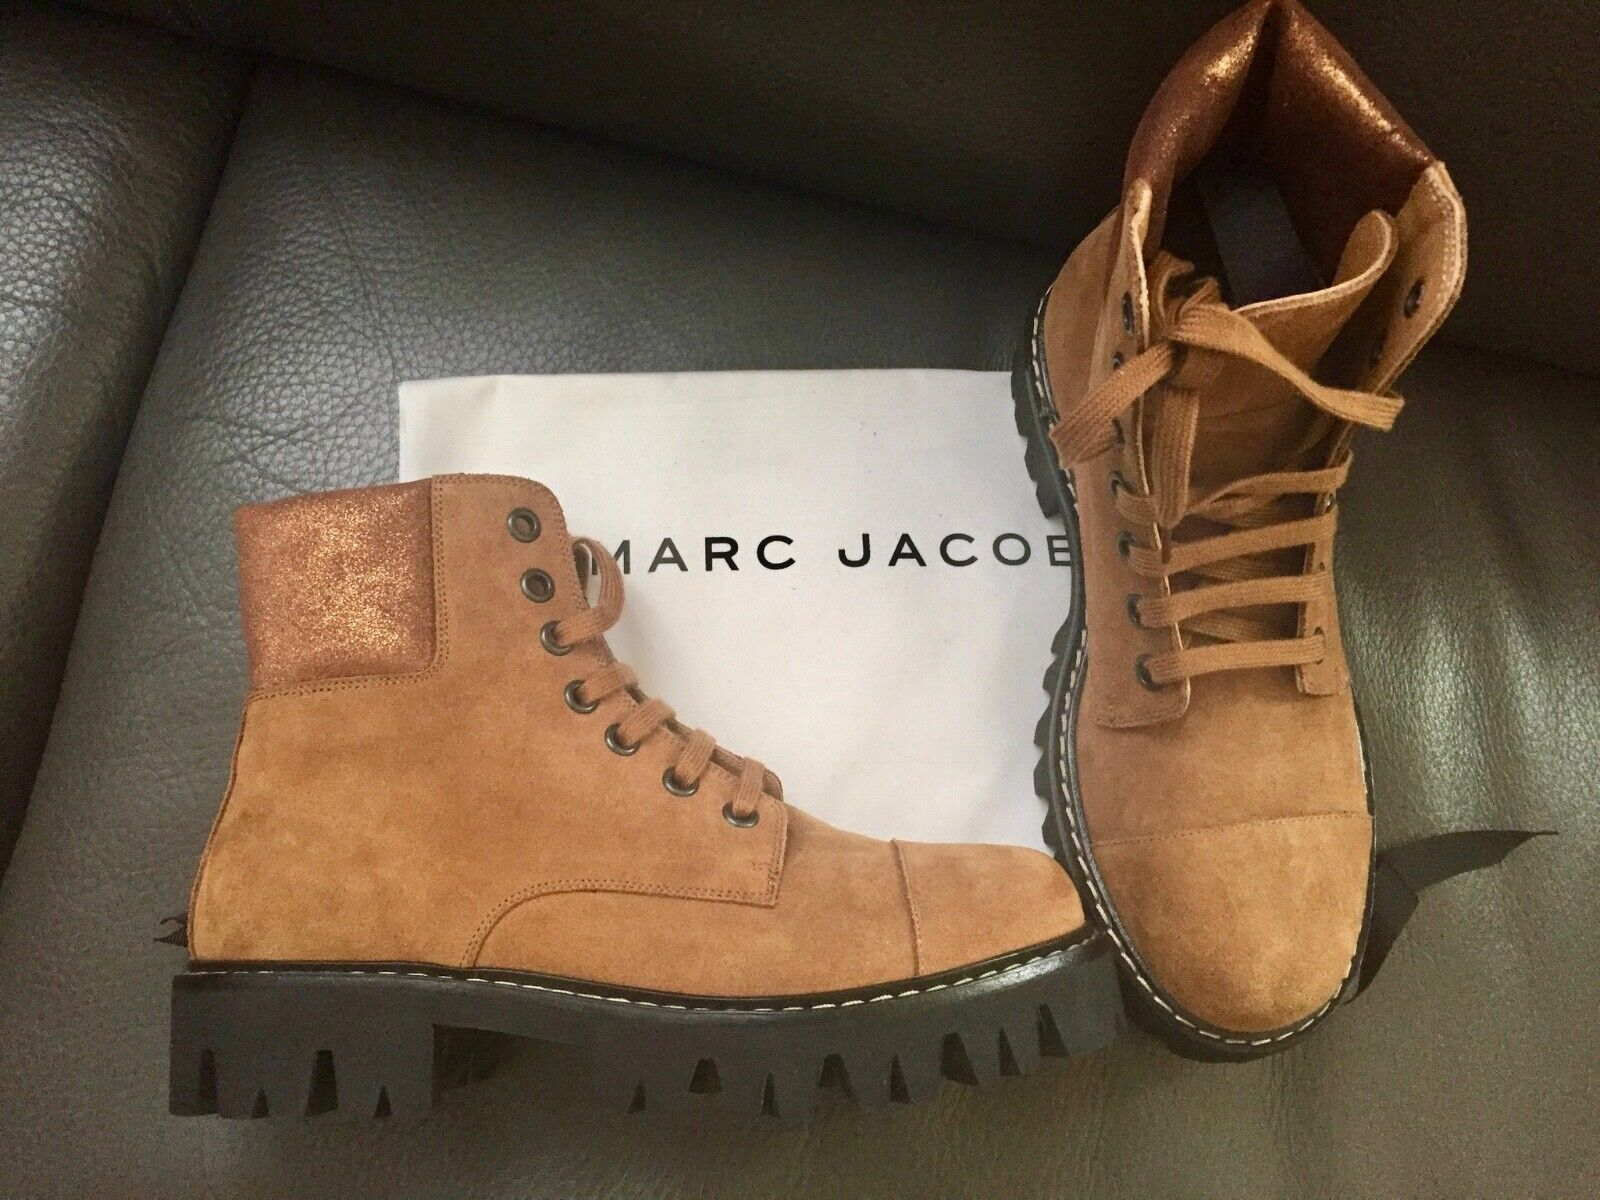 NEW MARC JACOBS LACE-UP FASHION WORKERS BOOTS CHUNKY RUBBER SOLE M ITALY SIZE 7